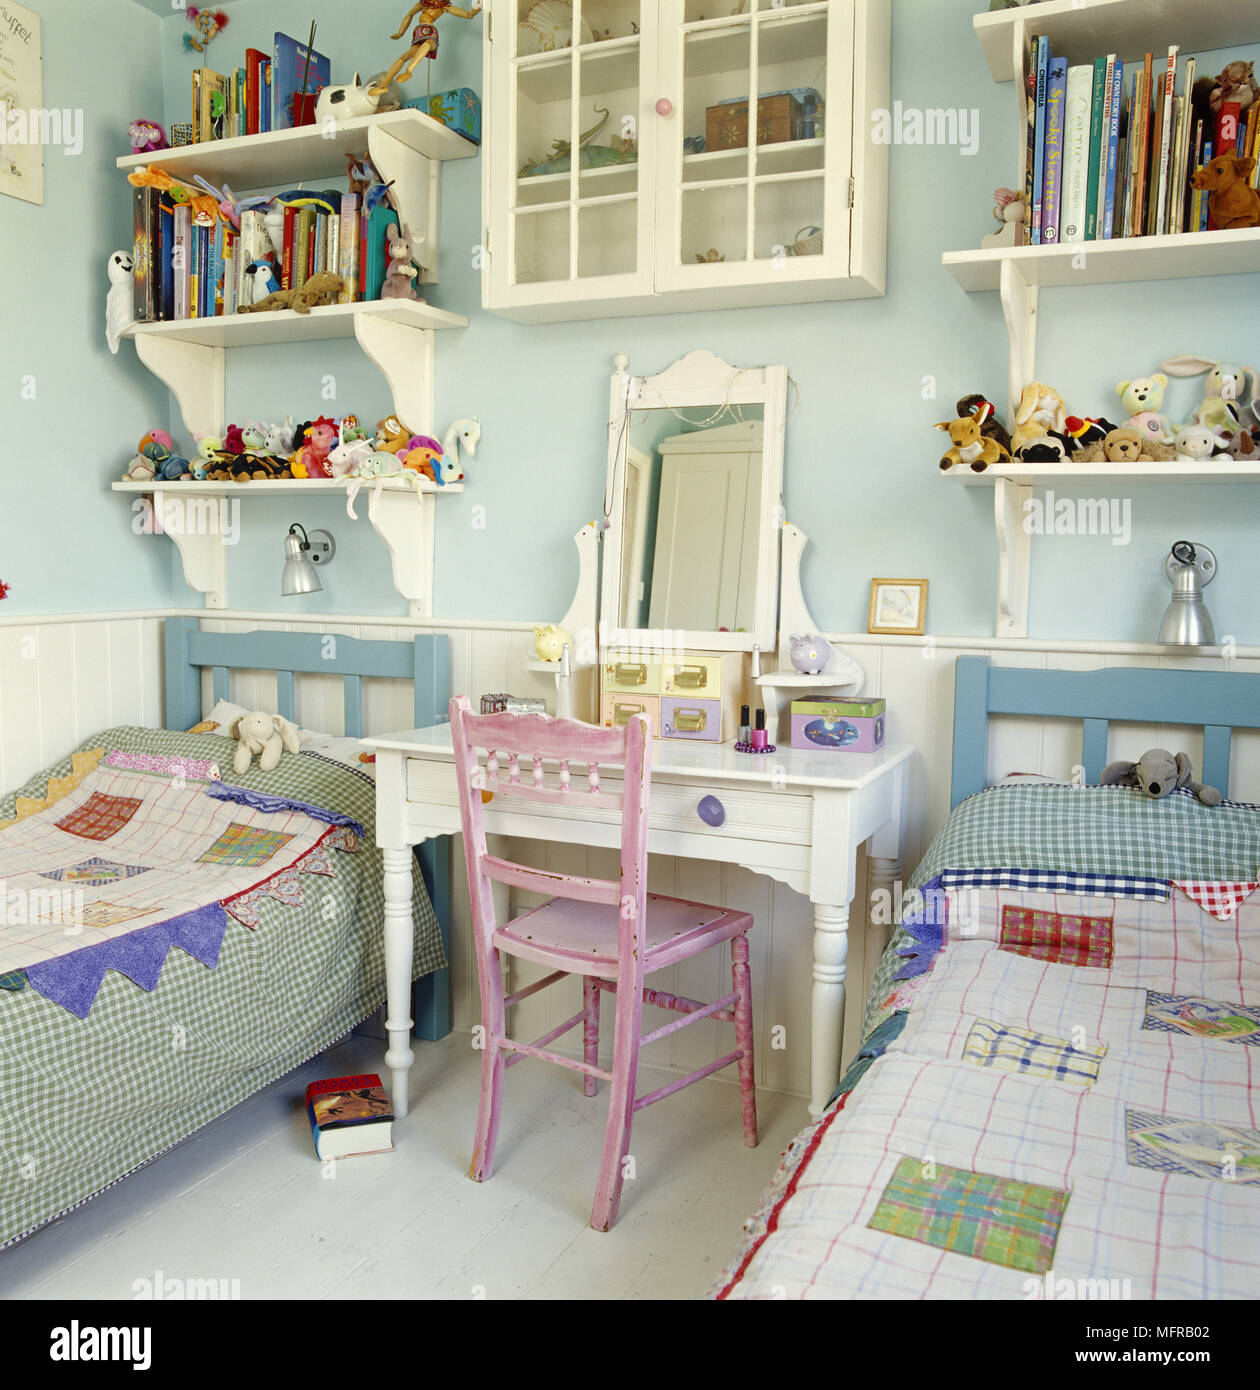 Picture of: Pair Of Single Beds In Childrens Room Stock Photo Alamy